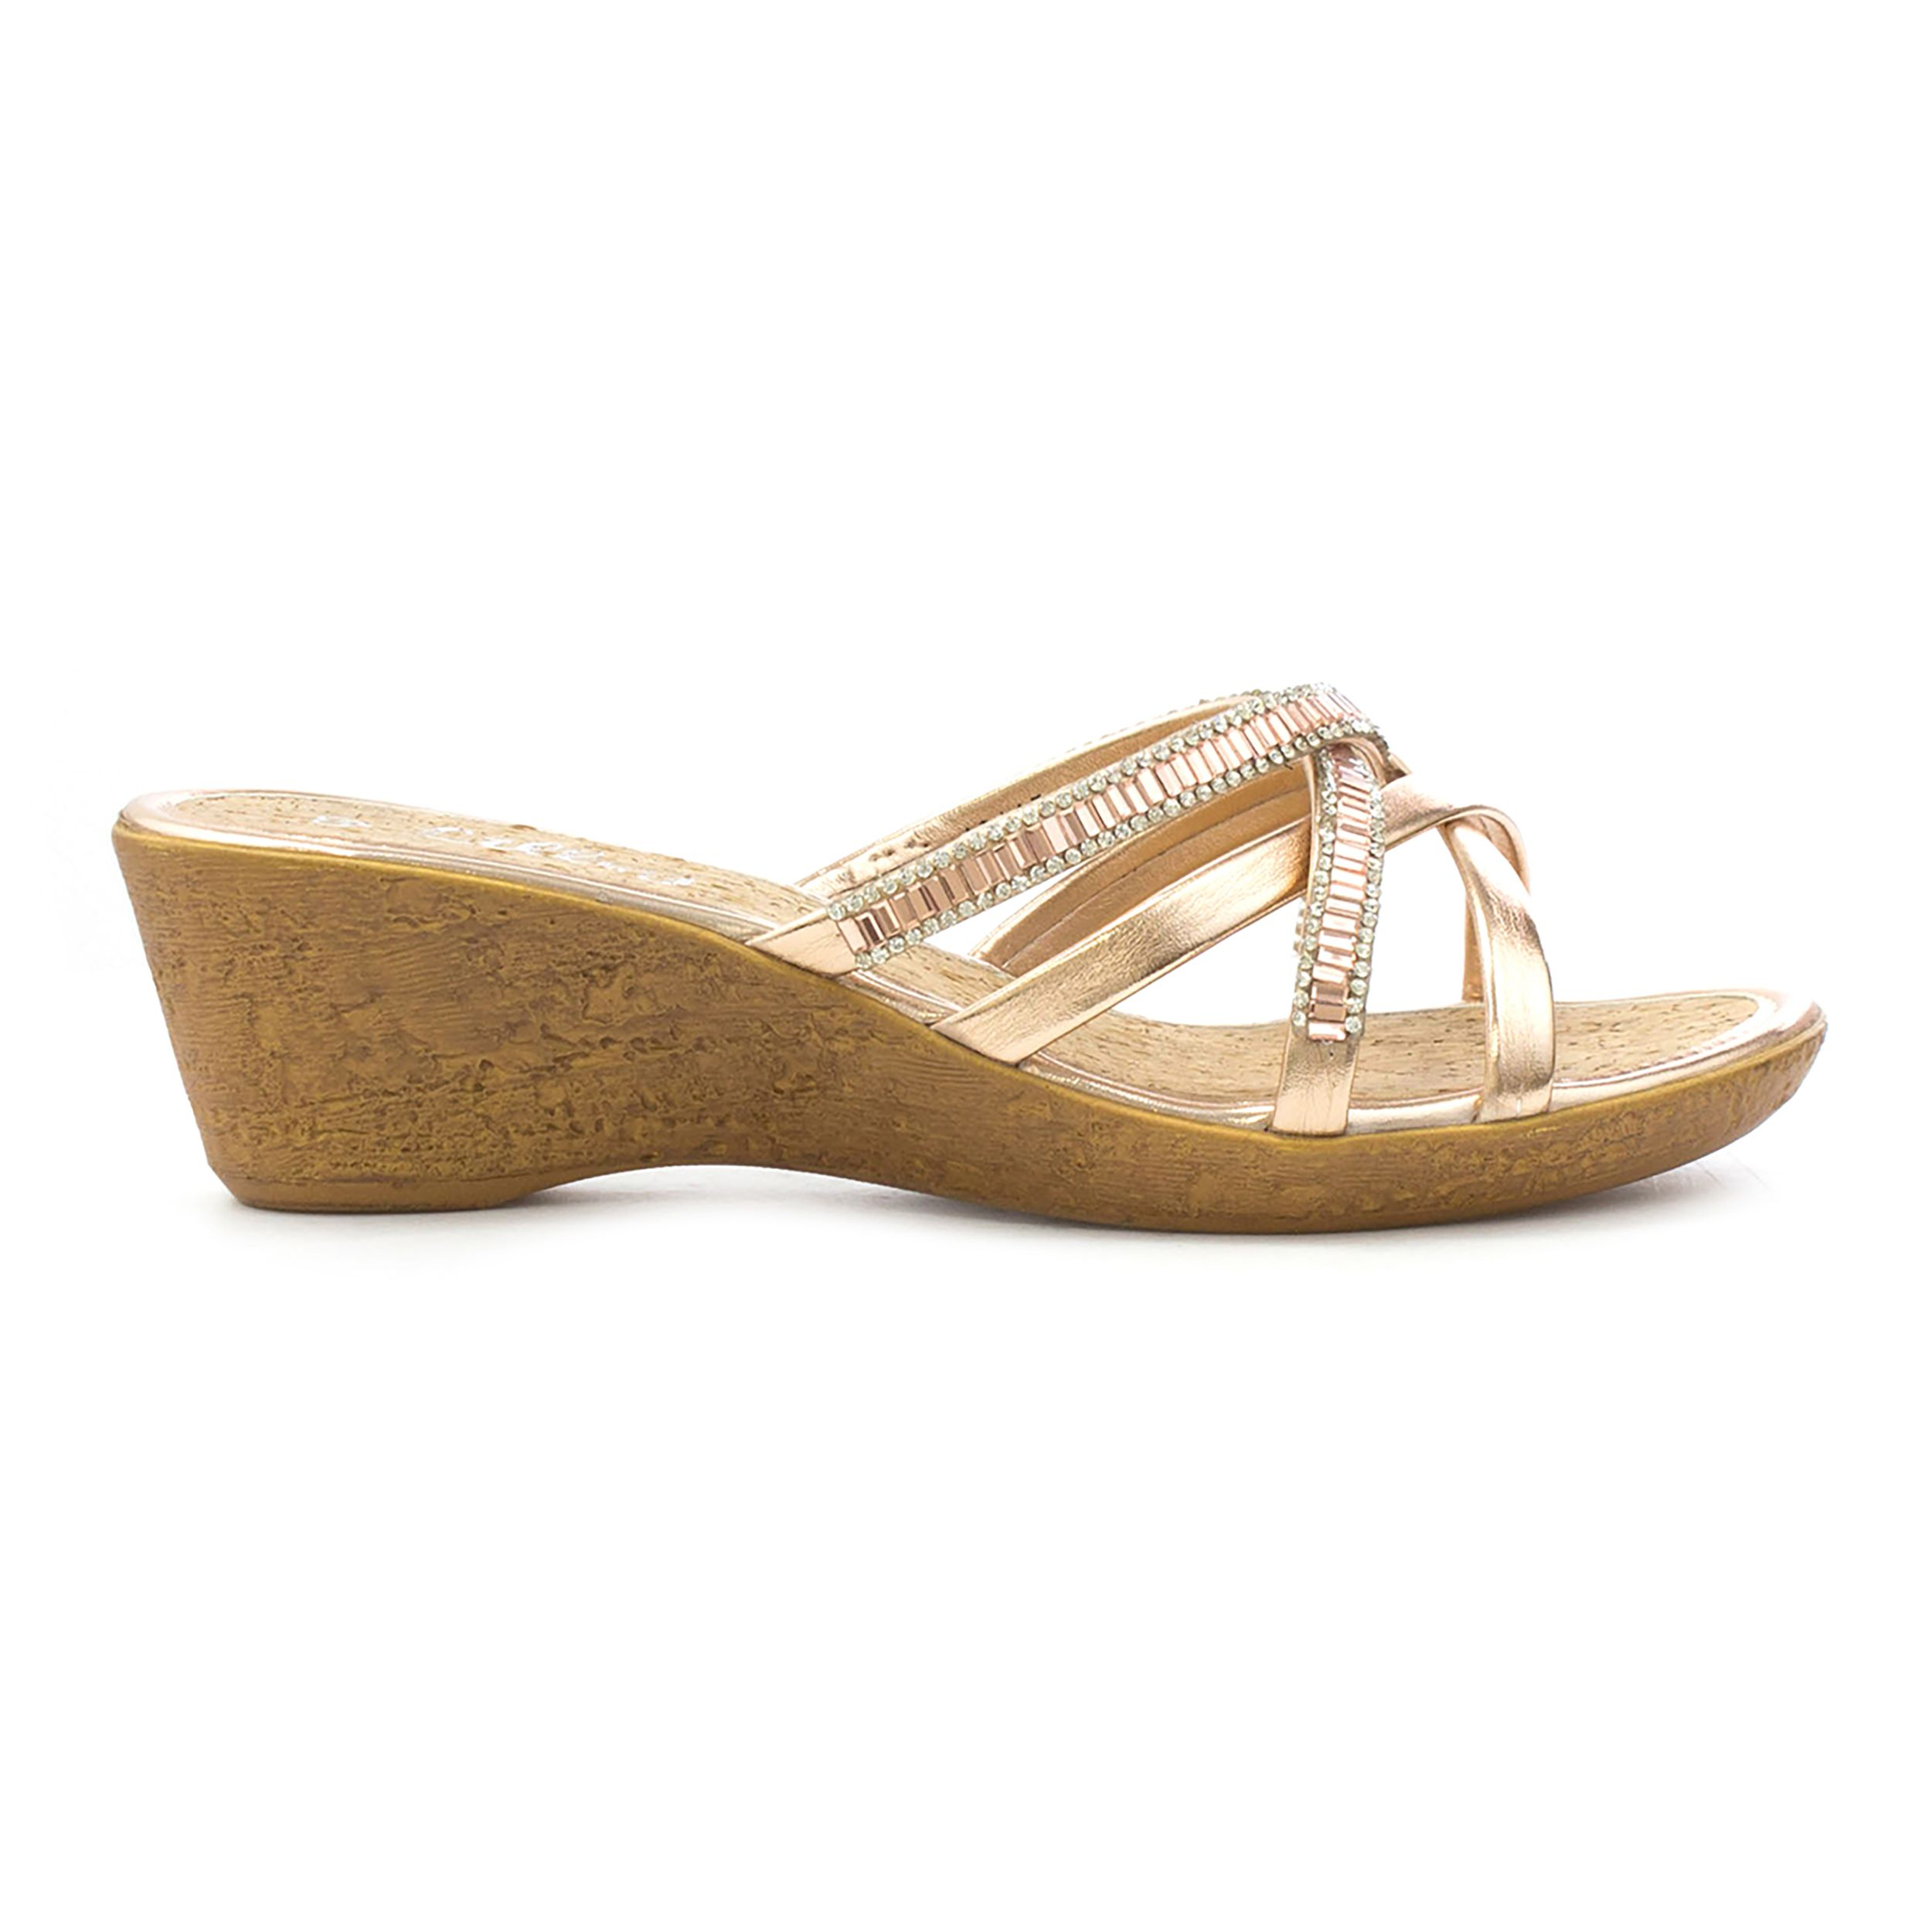 a66f5b182e8 Lilley Womens Rose Gold Strappy Wedge Sandal